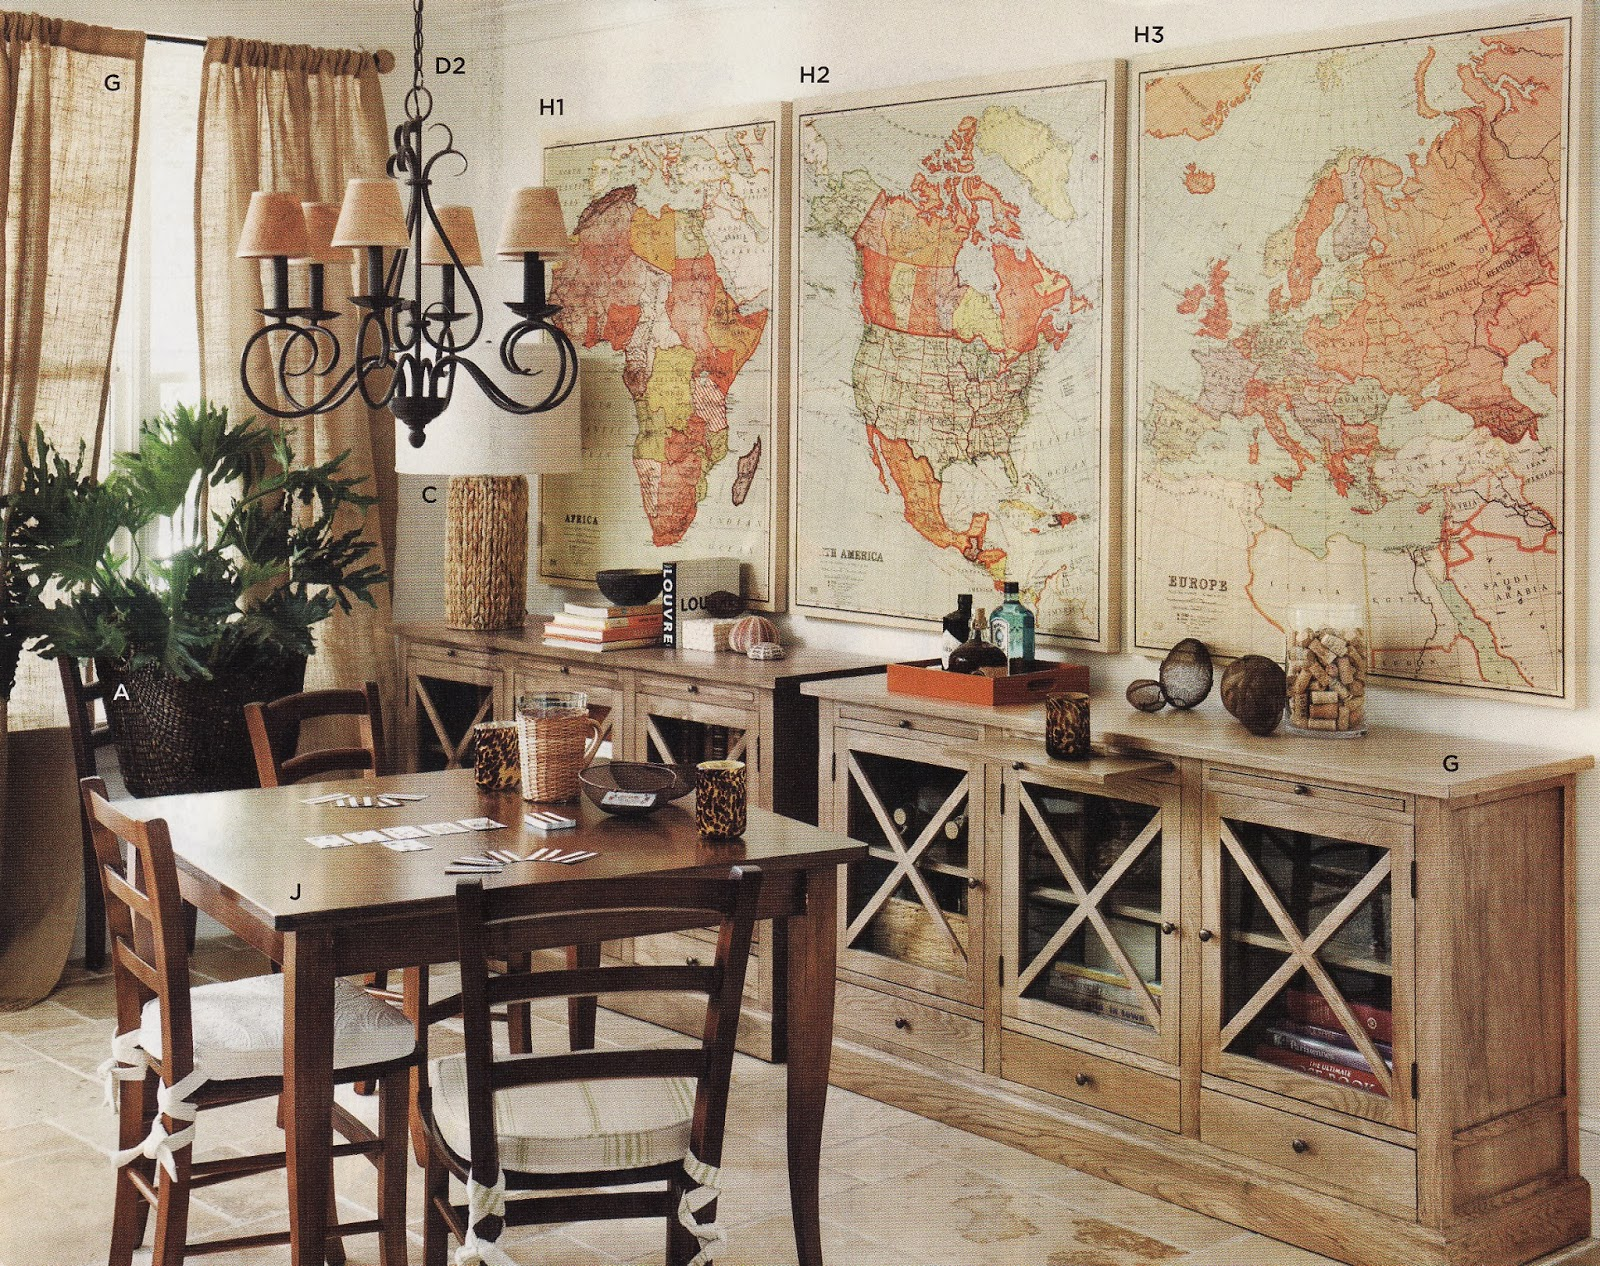 Creative juices decor oh for the love of maps home Vintage house decor